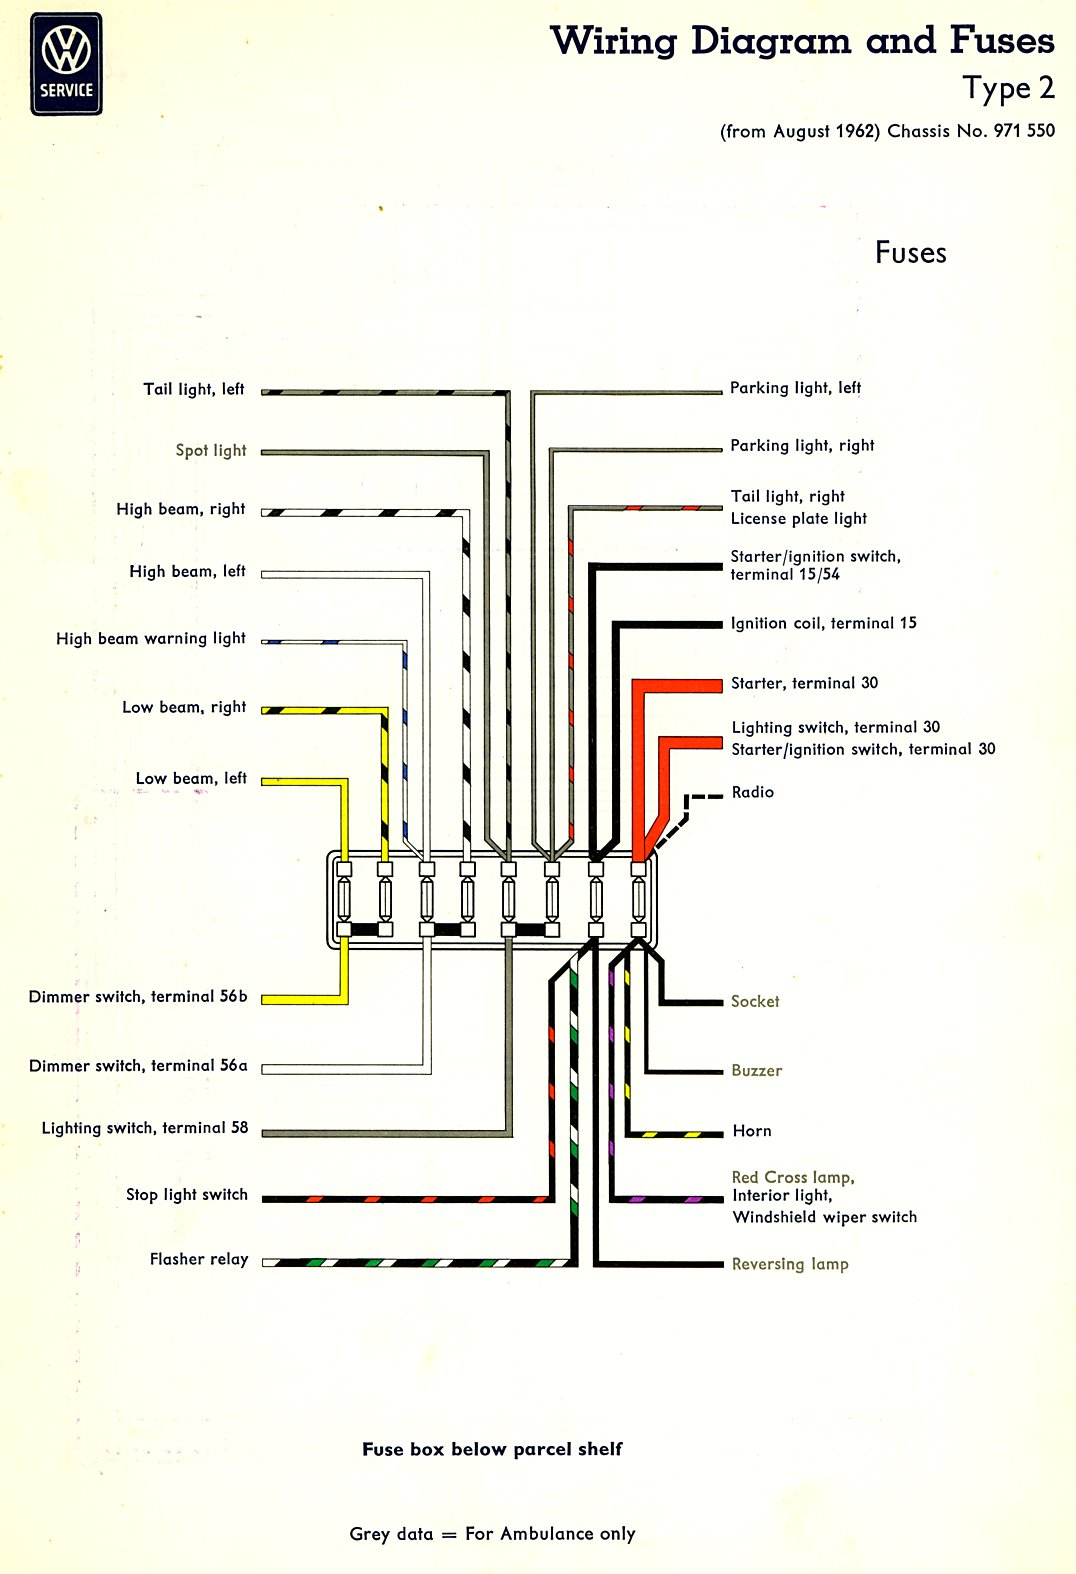 bus_63_fuses thesamba com type 2 wiring diagrams 64 valiant wiring diagram at bayanpartner.co